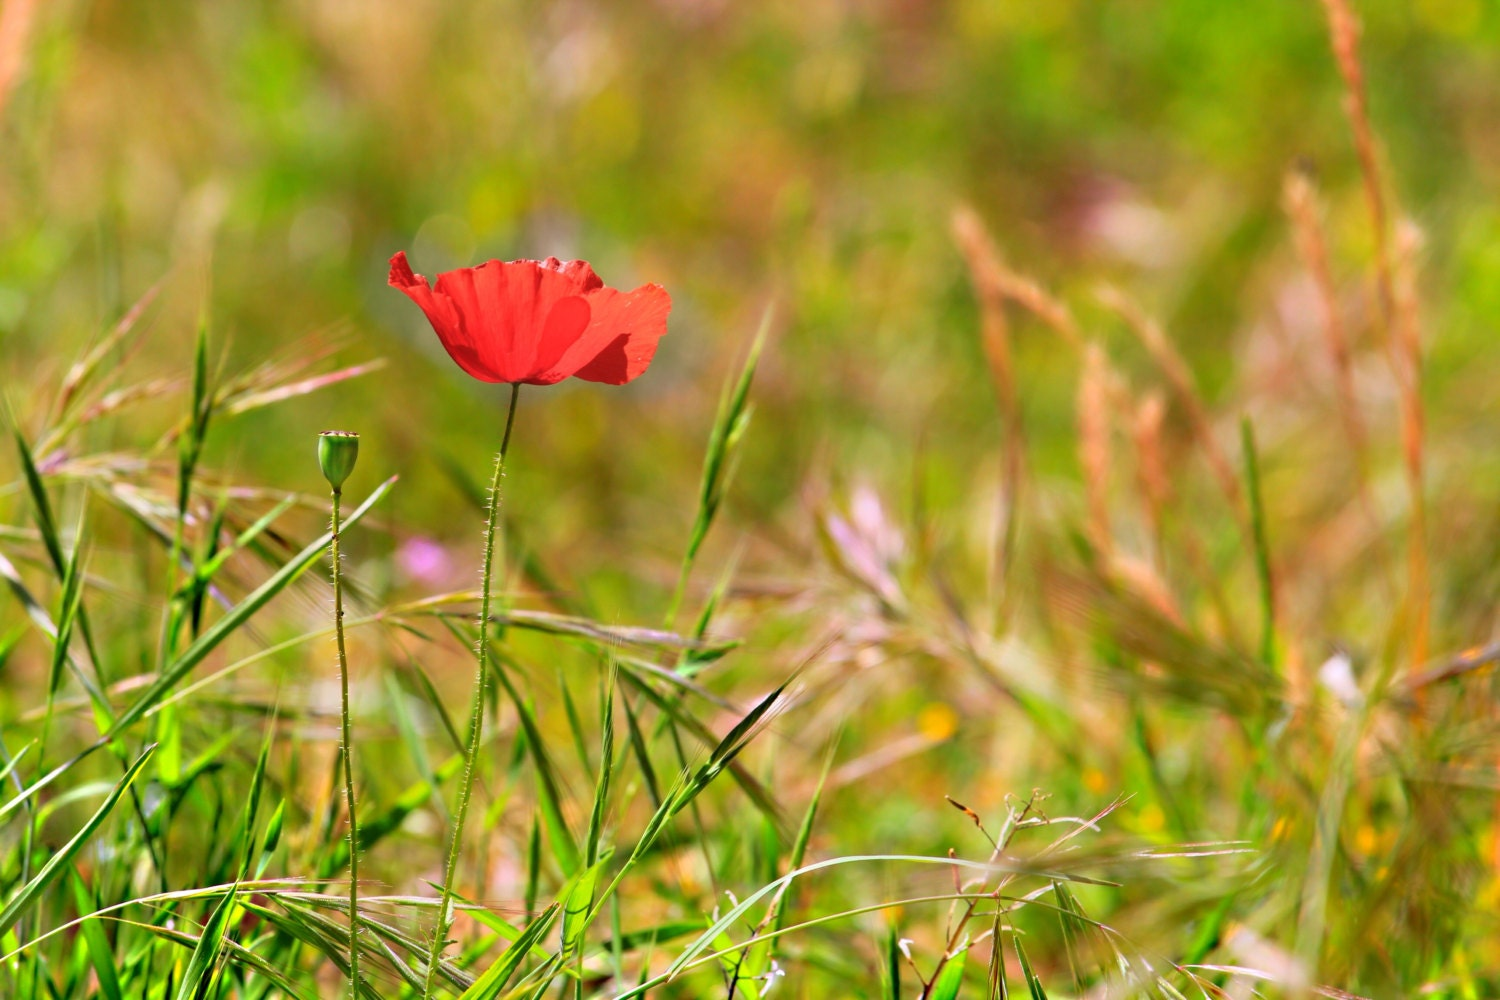 Red Poppy On a Sunny Day - PaddieNL